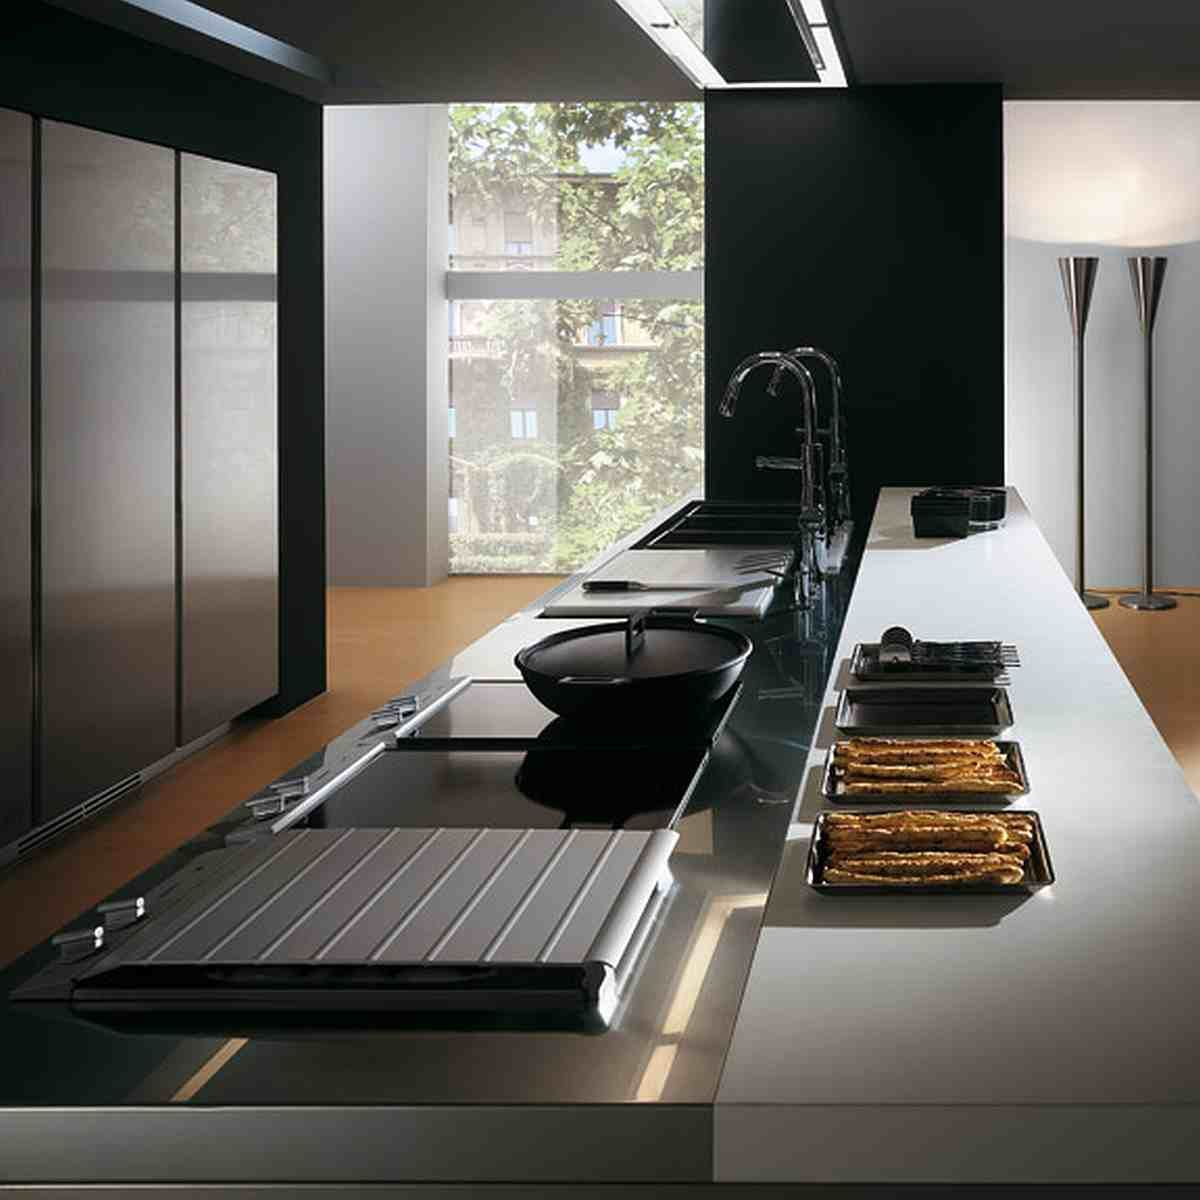 Pretty Superb Kitchen Island Design Listed In Artistic